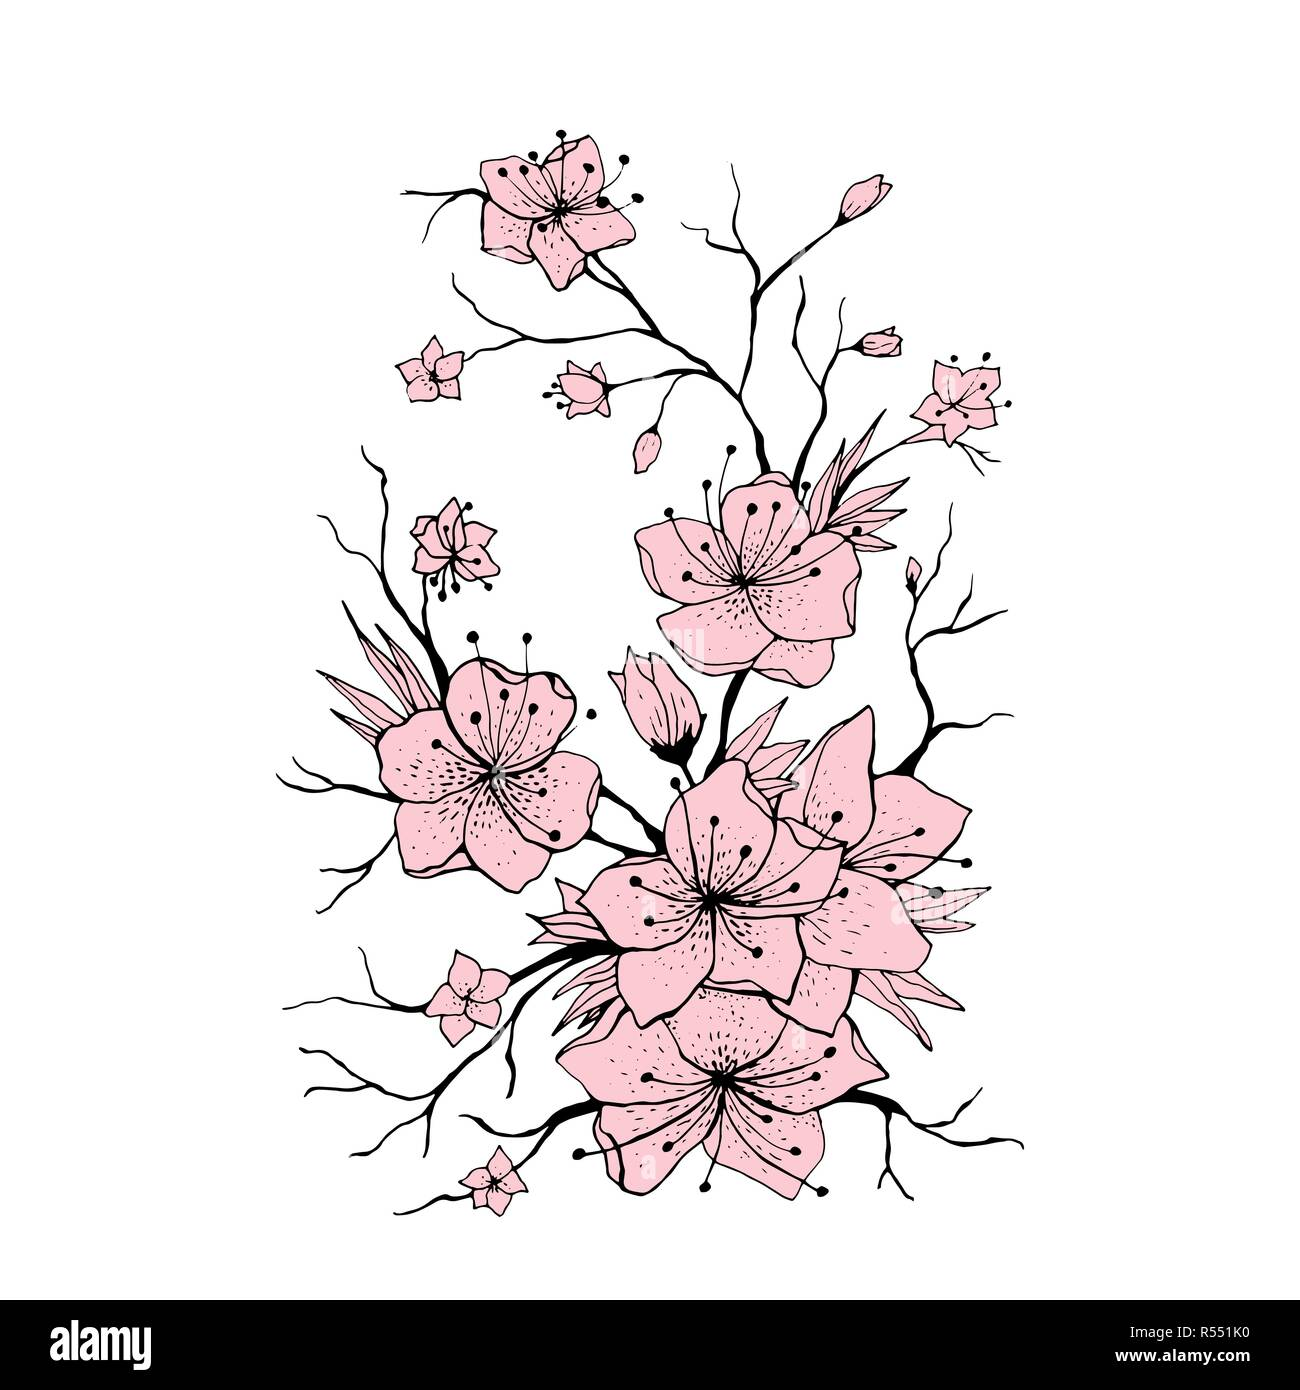 Sakura branch hand drawn illustration. Japanese Cherry tree twig. Pink flowers and buds on white background. Sakura branch with cherry blossom. Poster, logo floral design element. Isolated vector - Stock Vector